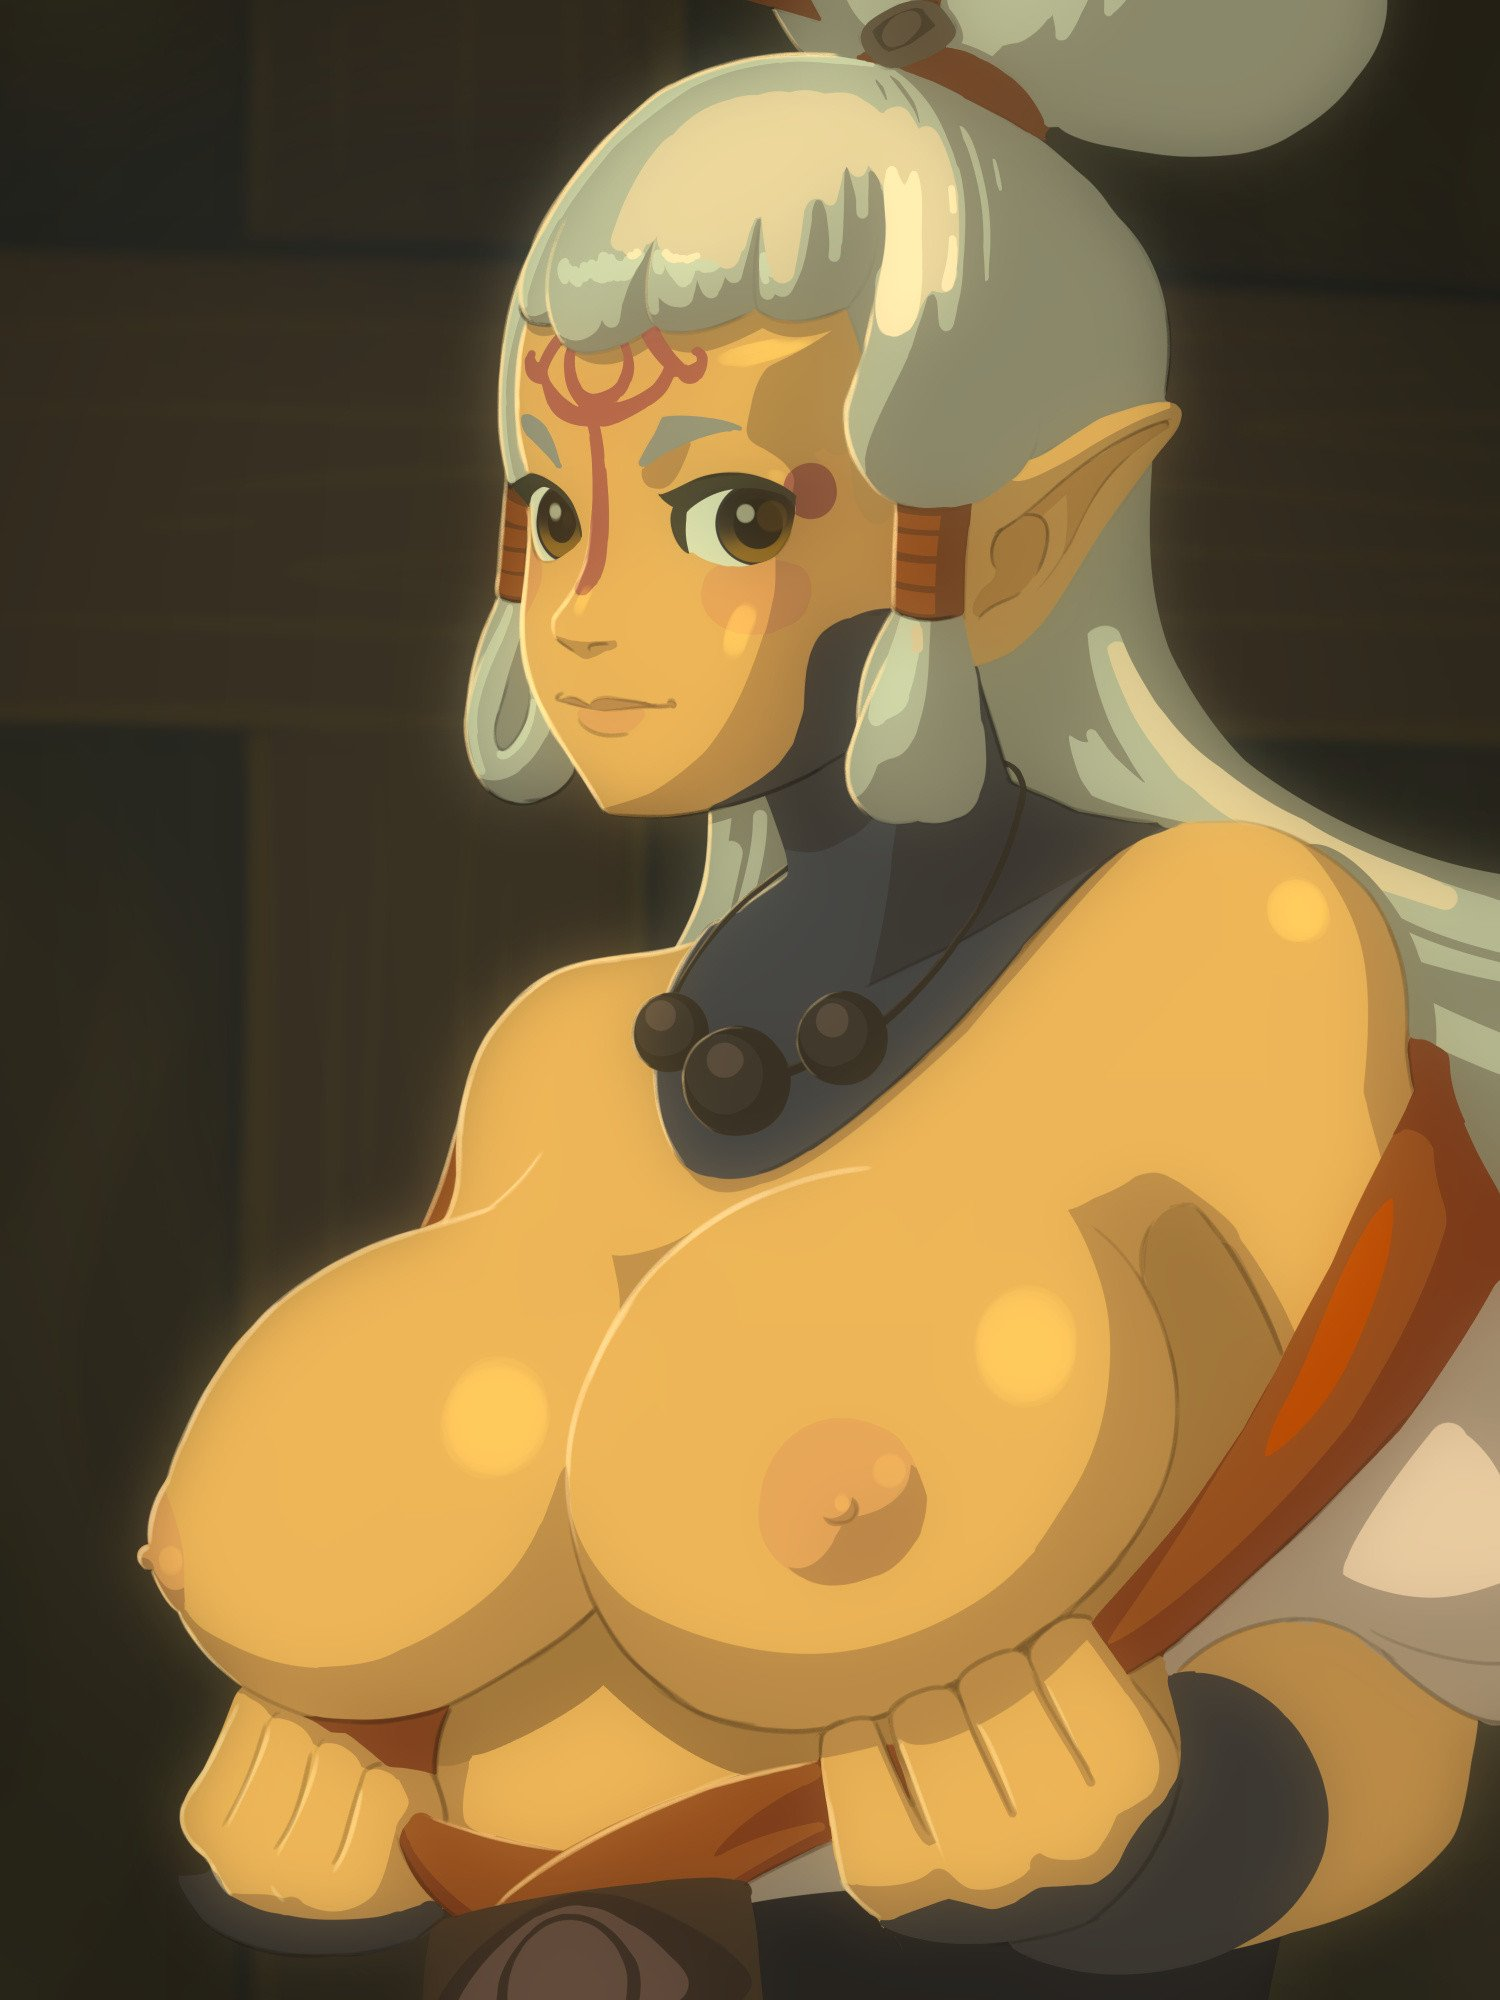 Paya breath of the wild hentai